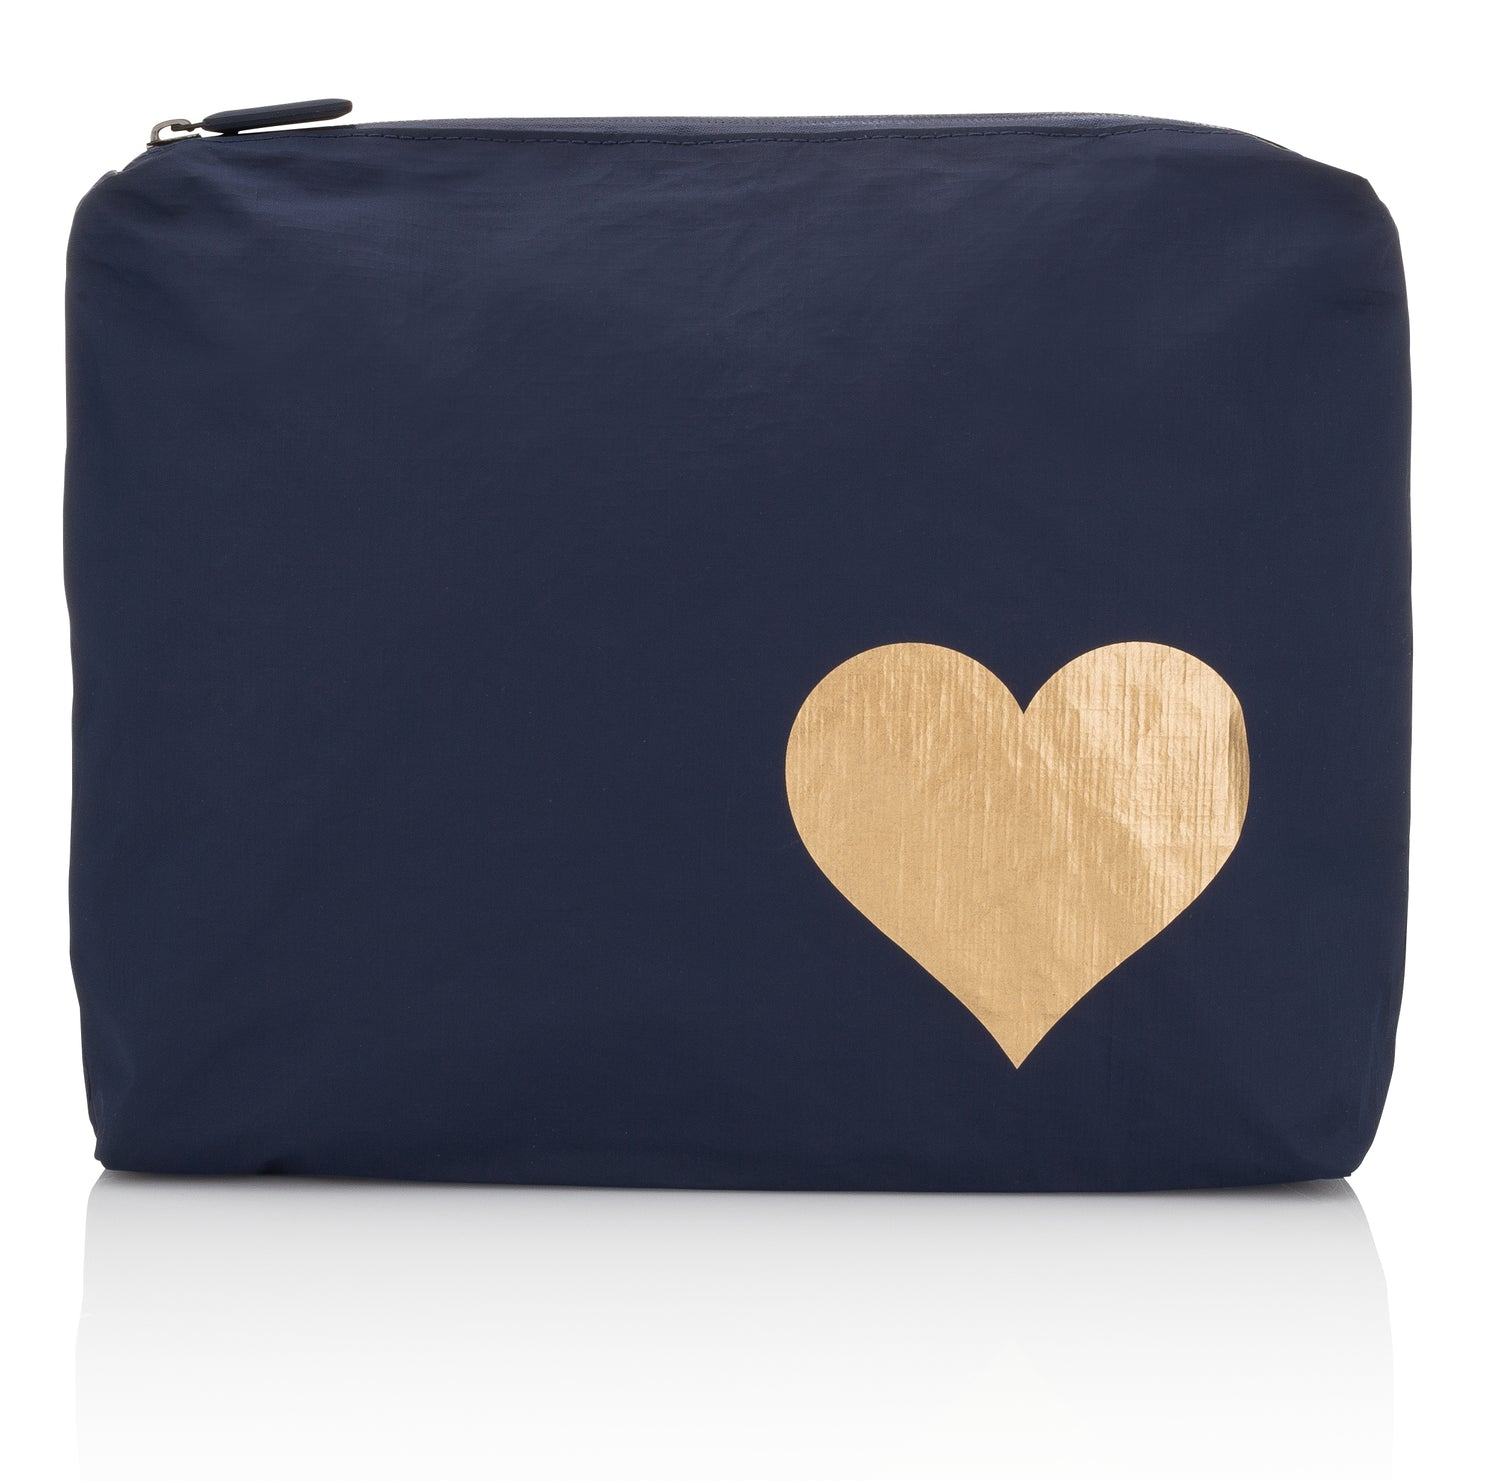 Medium Pouch Pack - Navy HLT Collection with Metallic Gold Heart